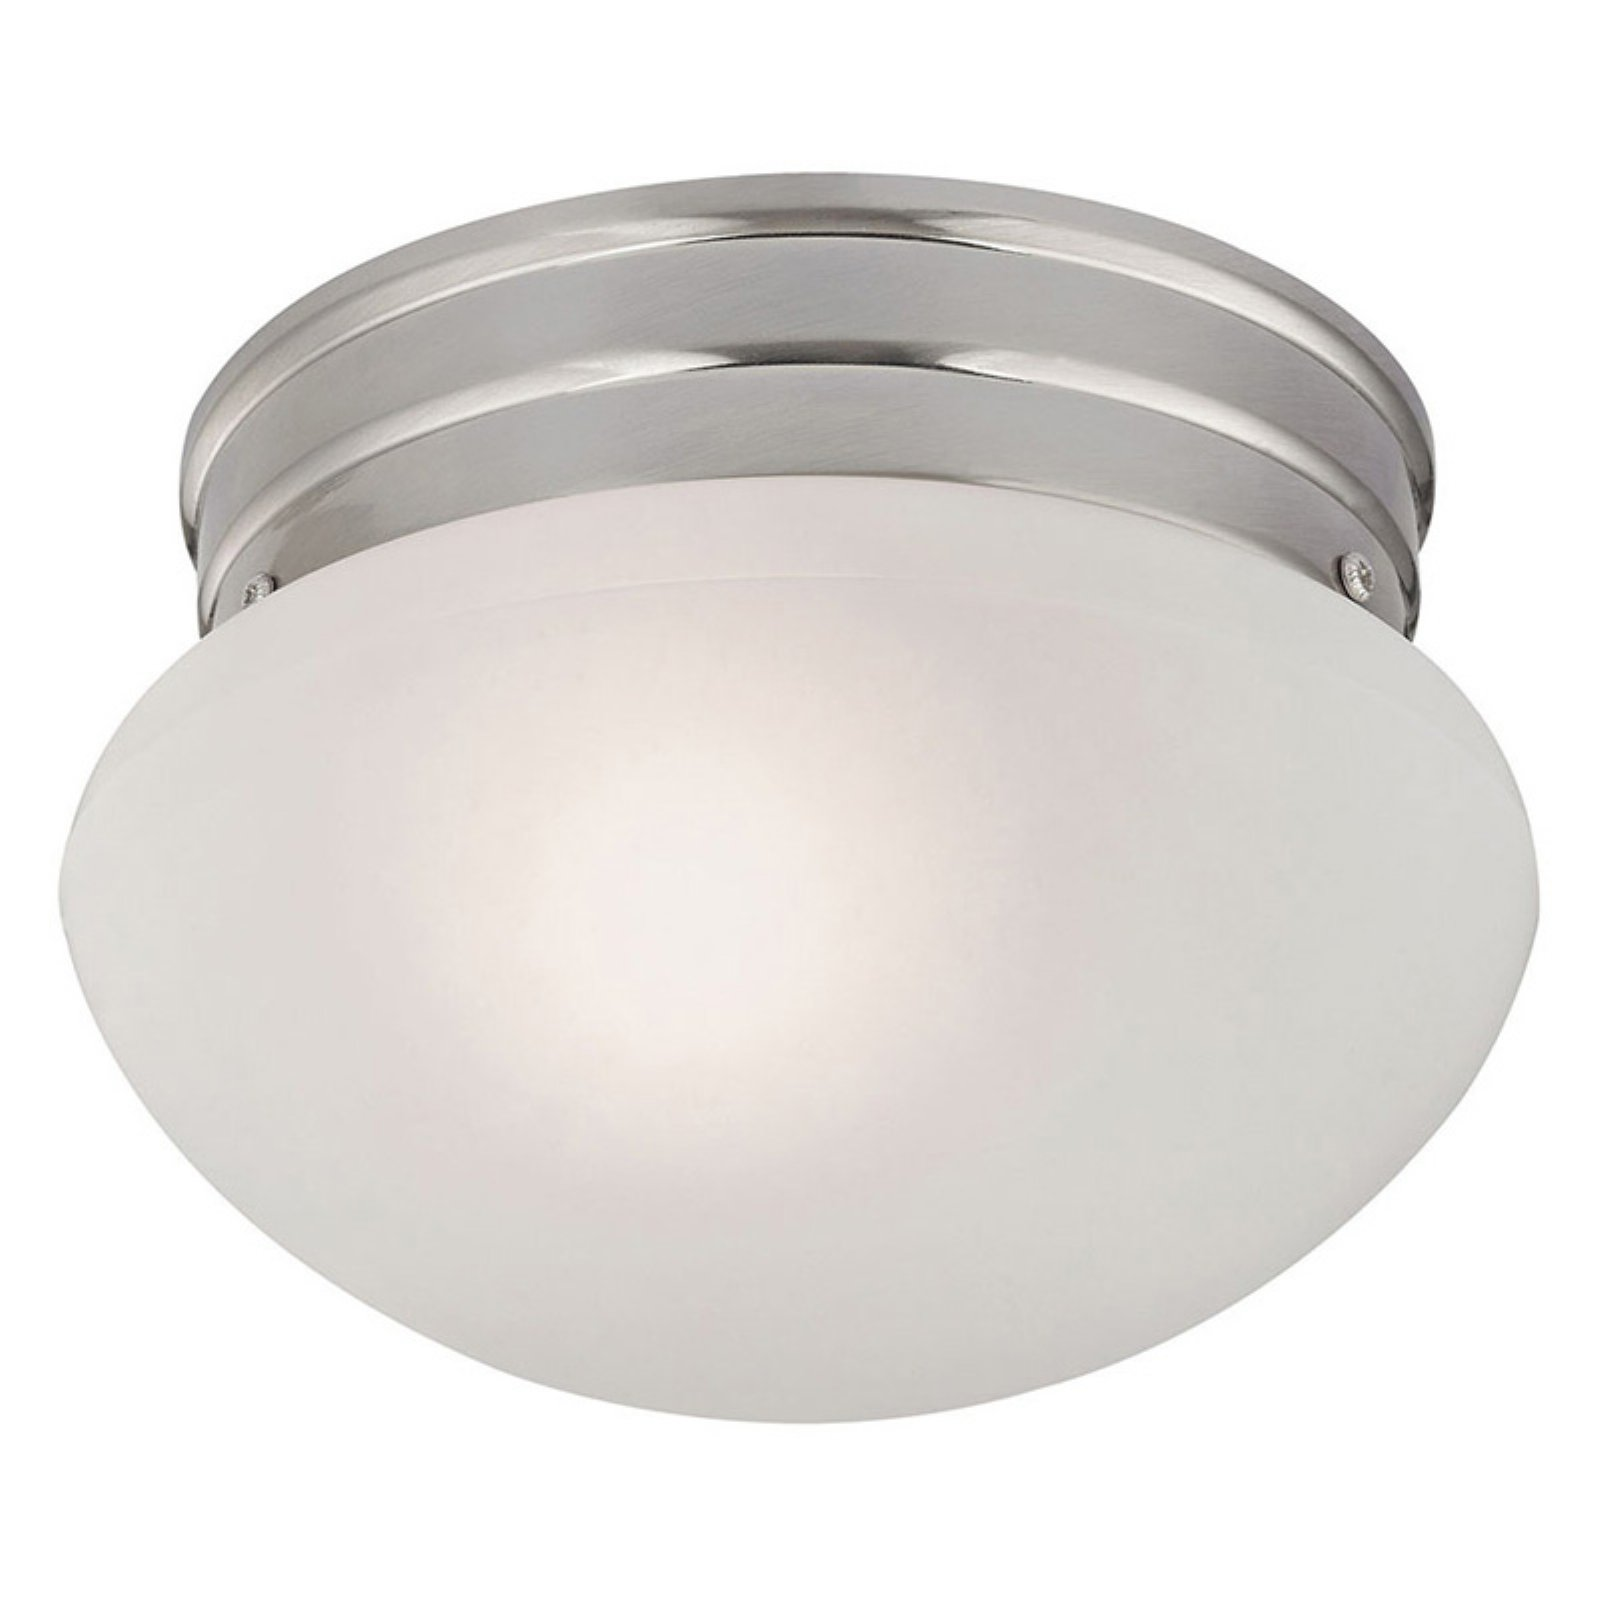 Thomas Lighting Mushroom 7021 Flush Mount Ceiling Light by CornerStone